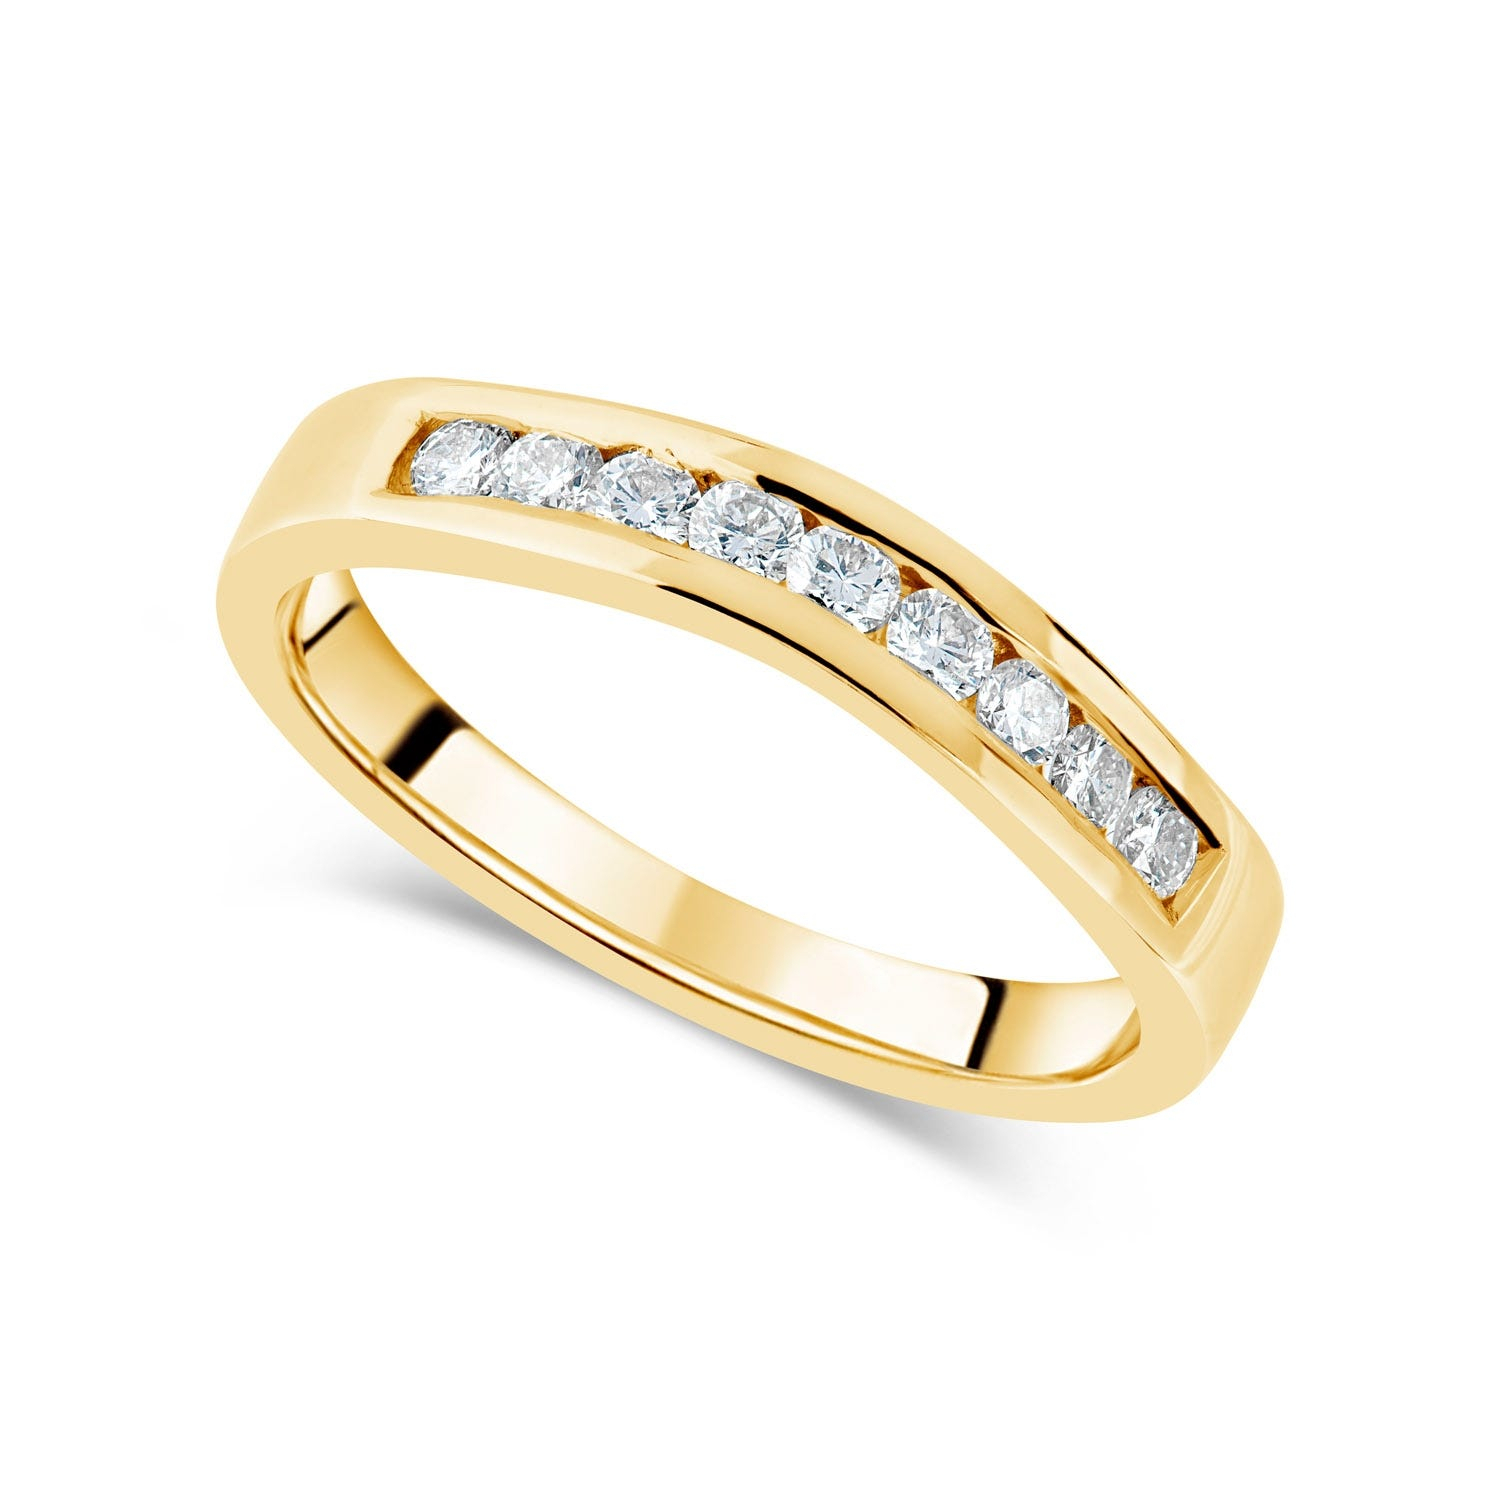 Wedding Rings & Bands Within Most Recently Released Wave Diamond Wedding Bands With Pavé (View 21 of 25)